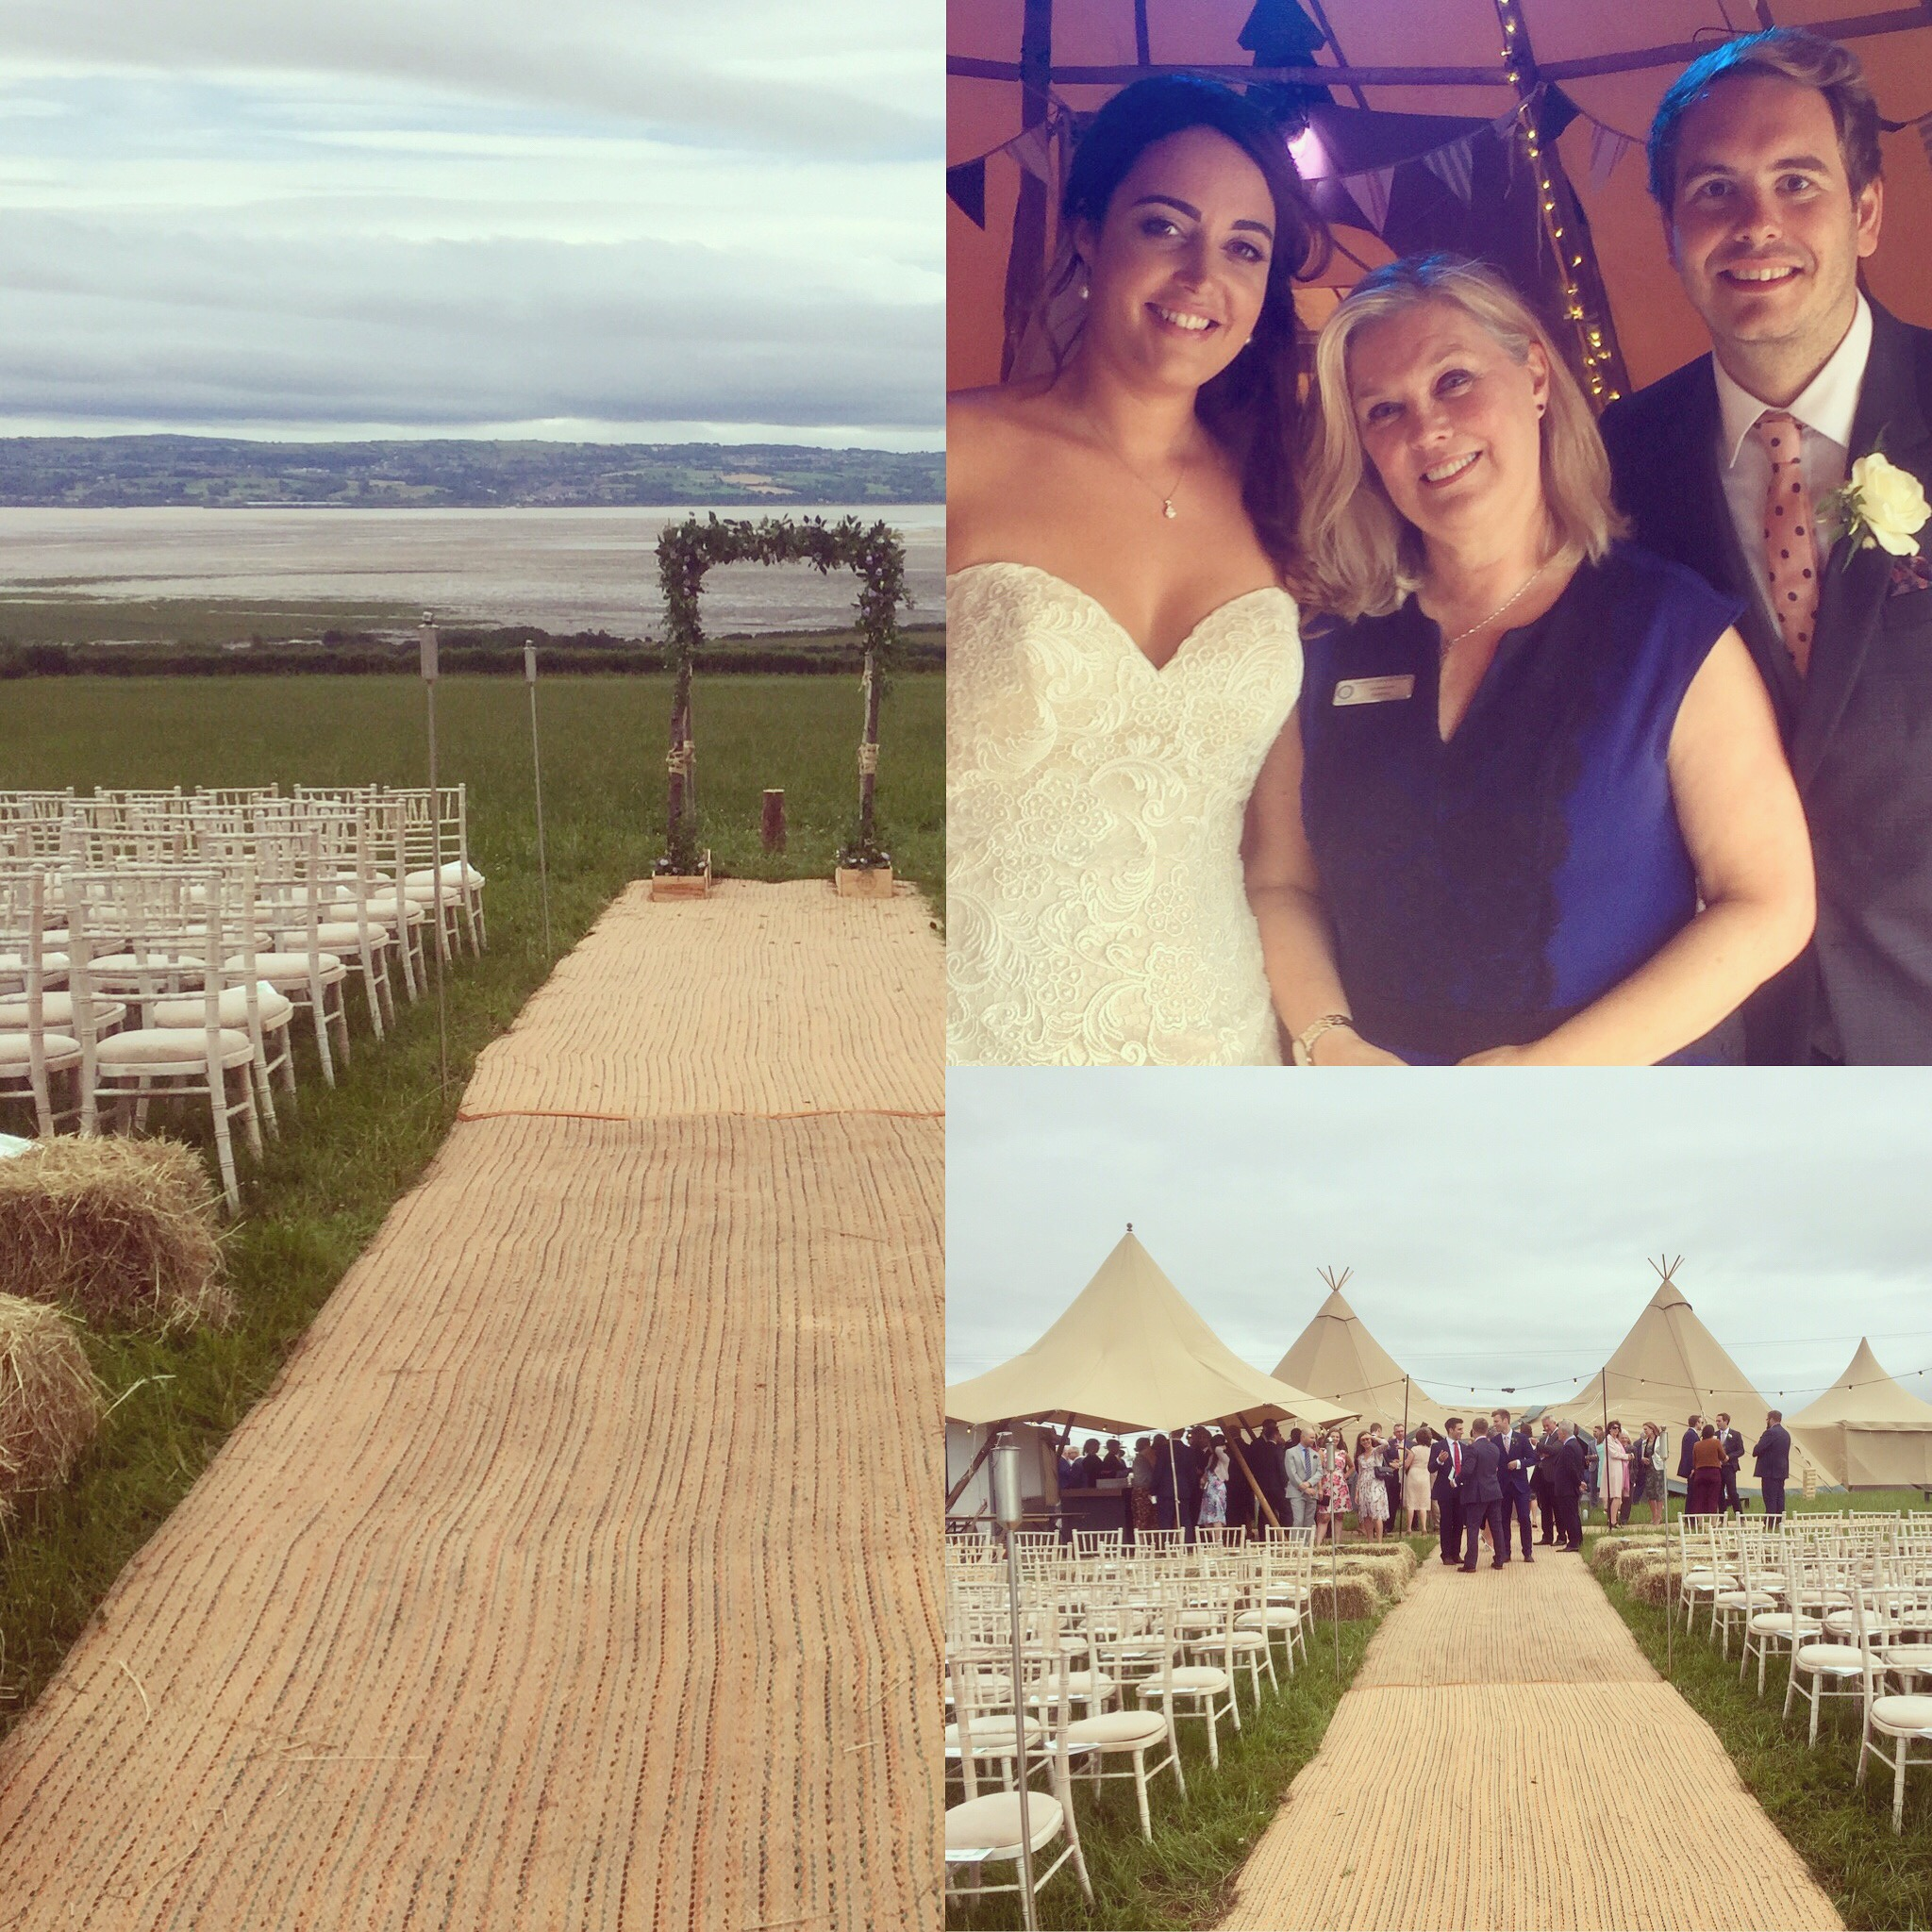 Wirral wedding, overlooking the River Dee